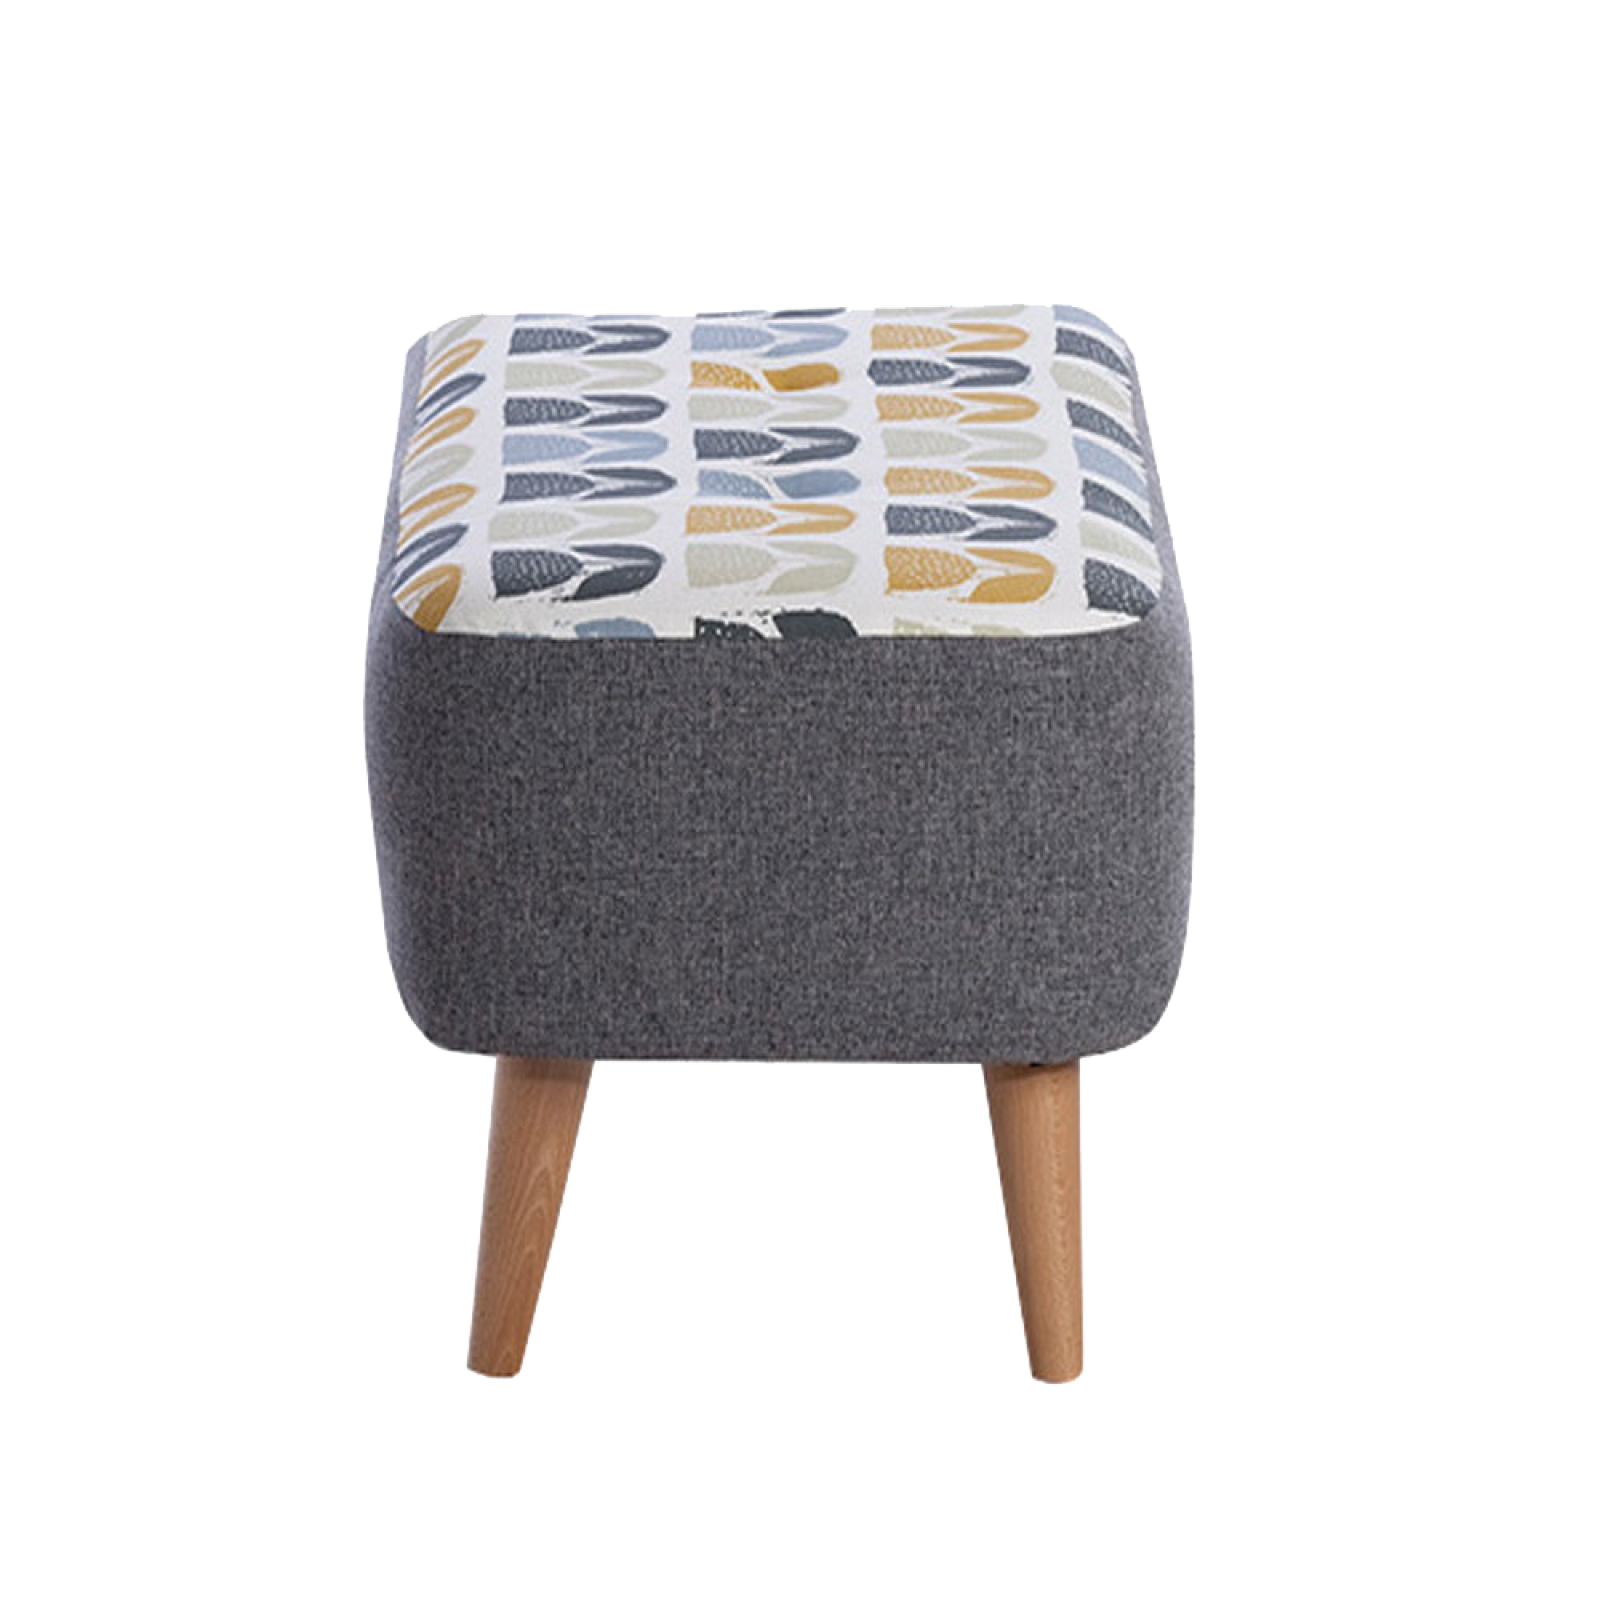 Lisbon Designer Small Bench Stool By Whitemeadow- Fabric Grade B thumbnails